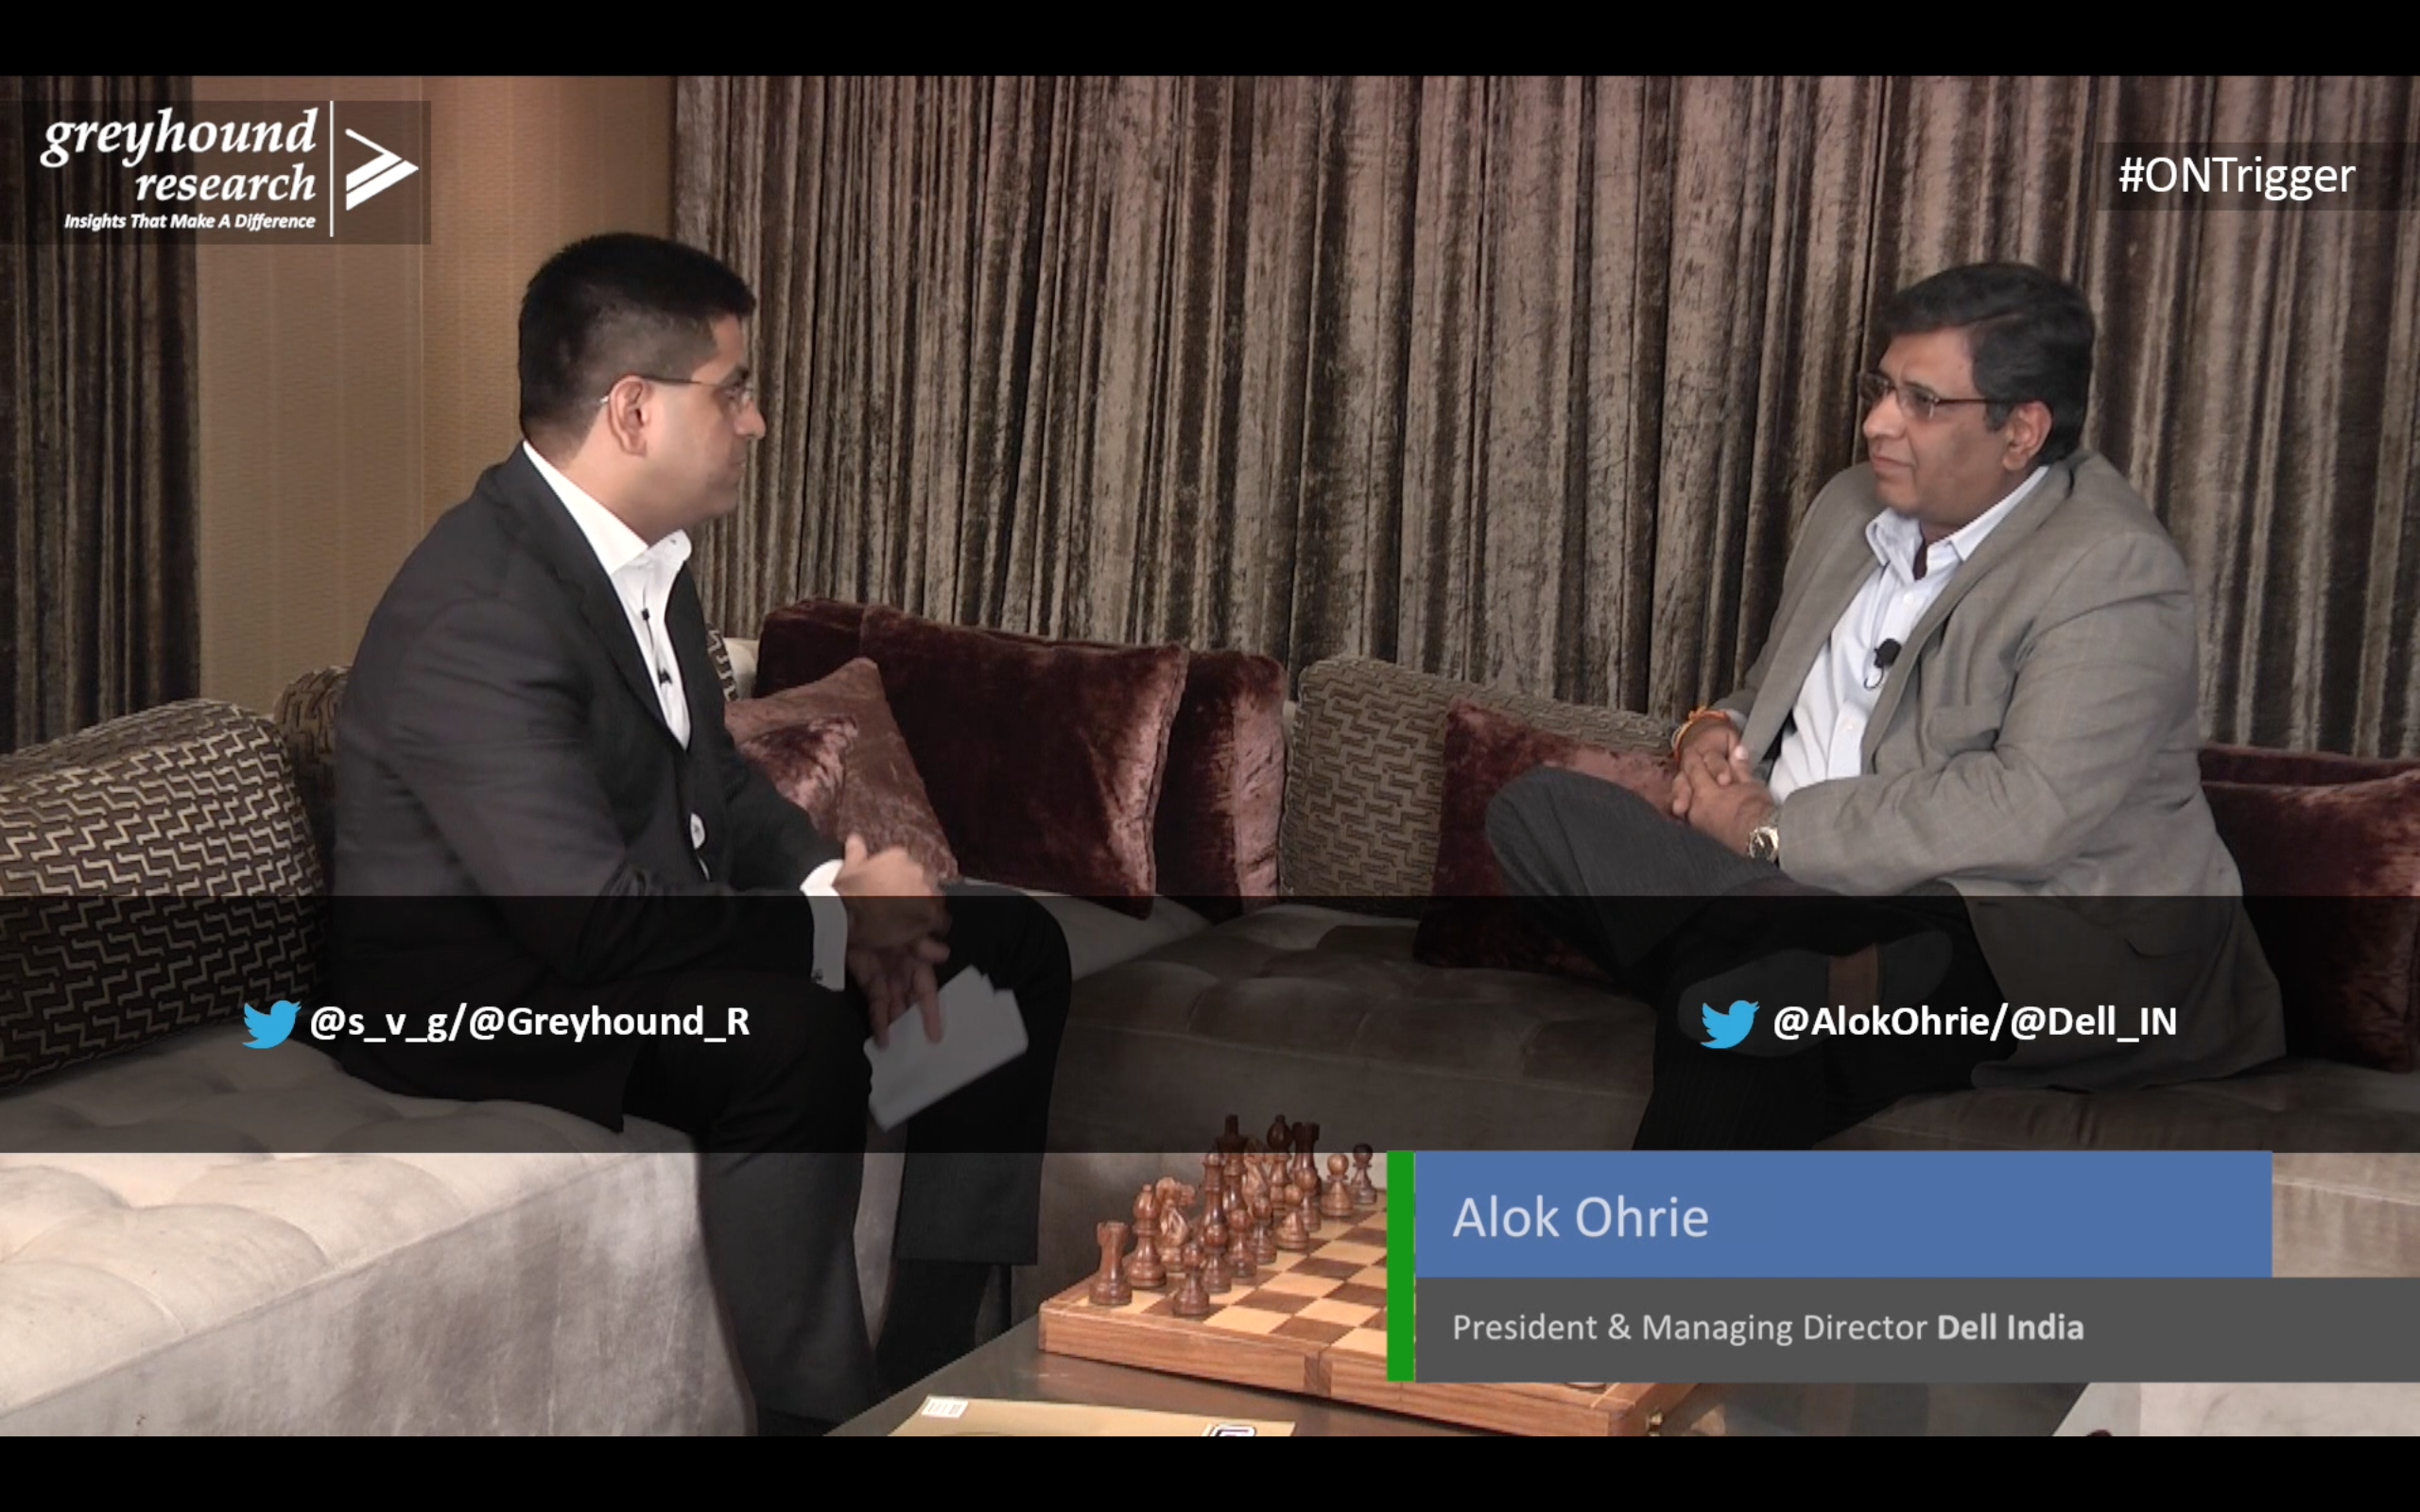 #ONTrigger: @s_v_g Chief Analyst & CEO @Greyhound_R with @AlokOhrie, President & MD, @Dell_IN